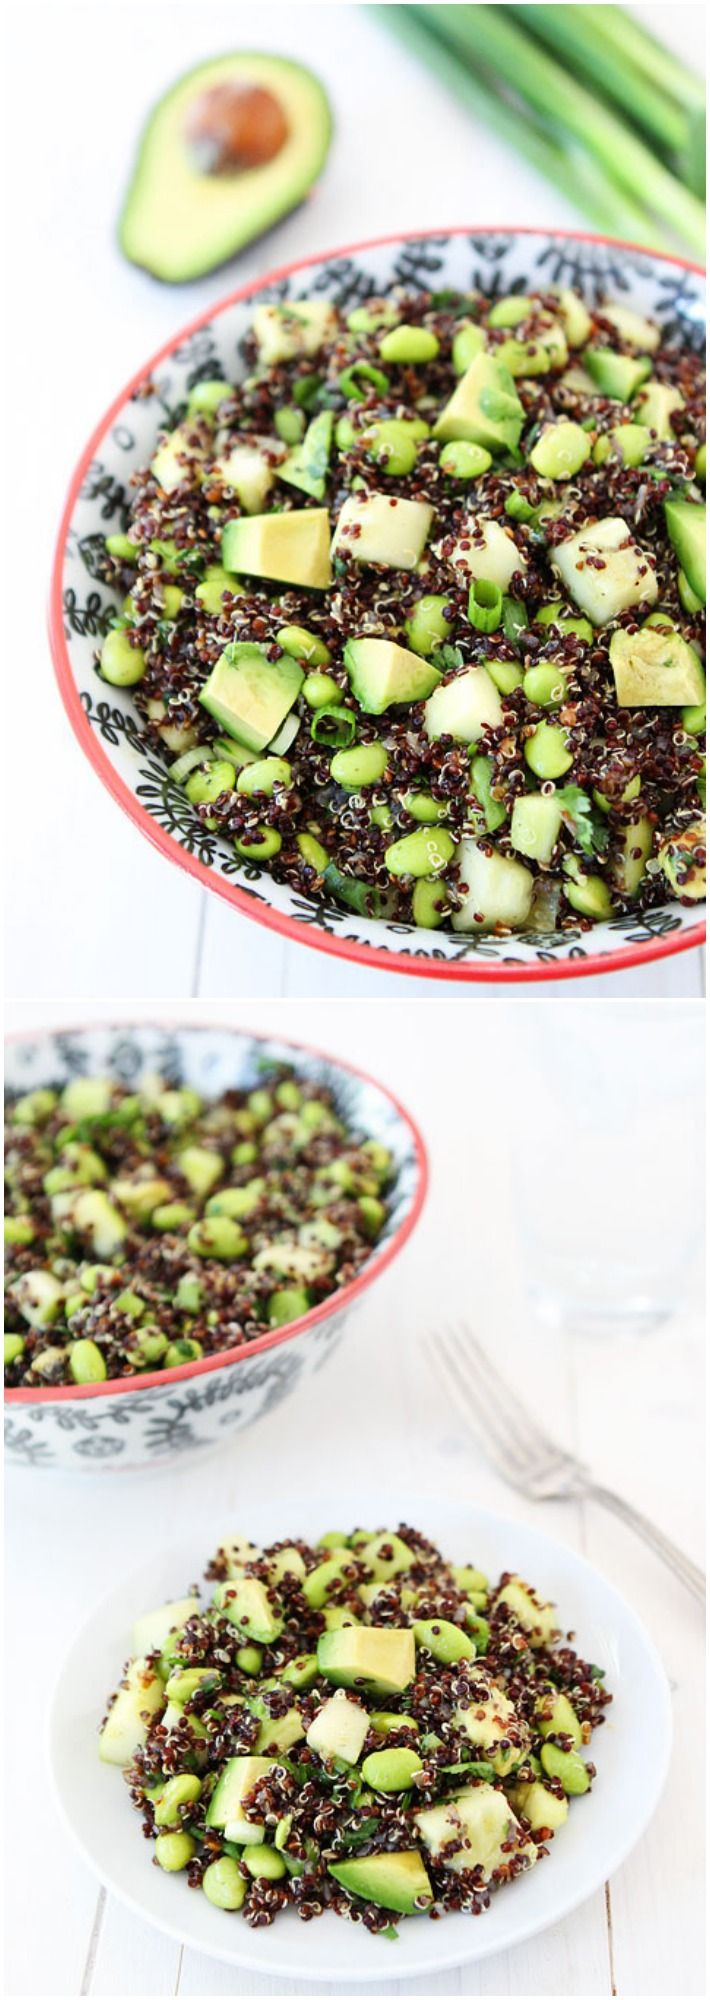 Quinoa Salad with Edamame, Cucumber, and Avocado on twopeasandtheirpod.com. Love this healthy salad! #vegan #glutenfree